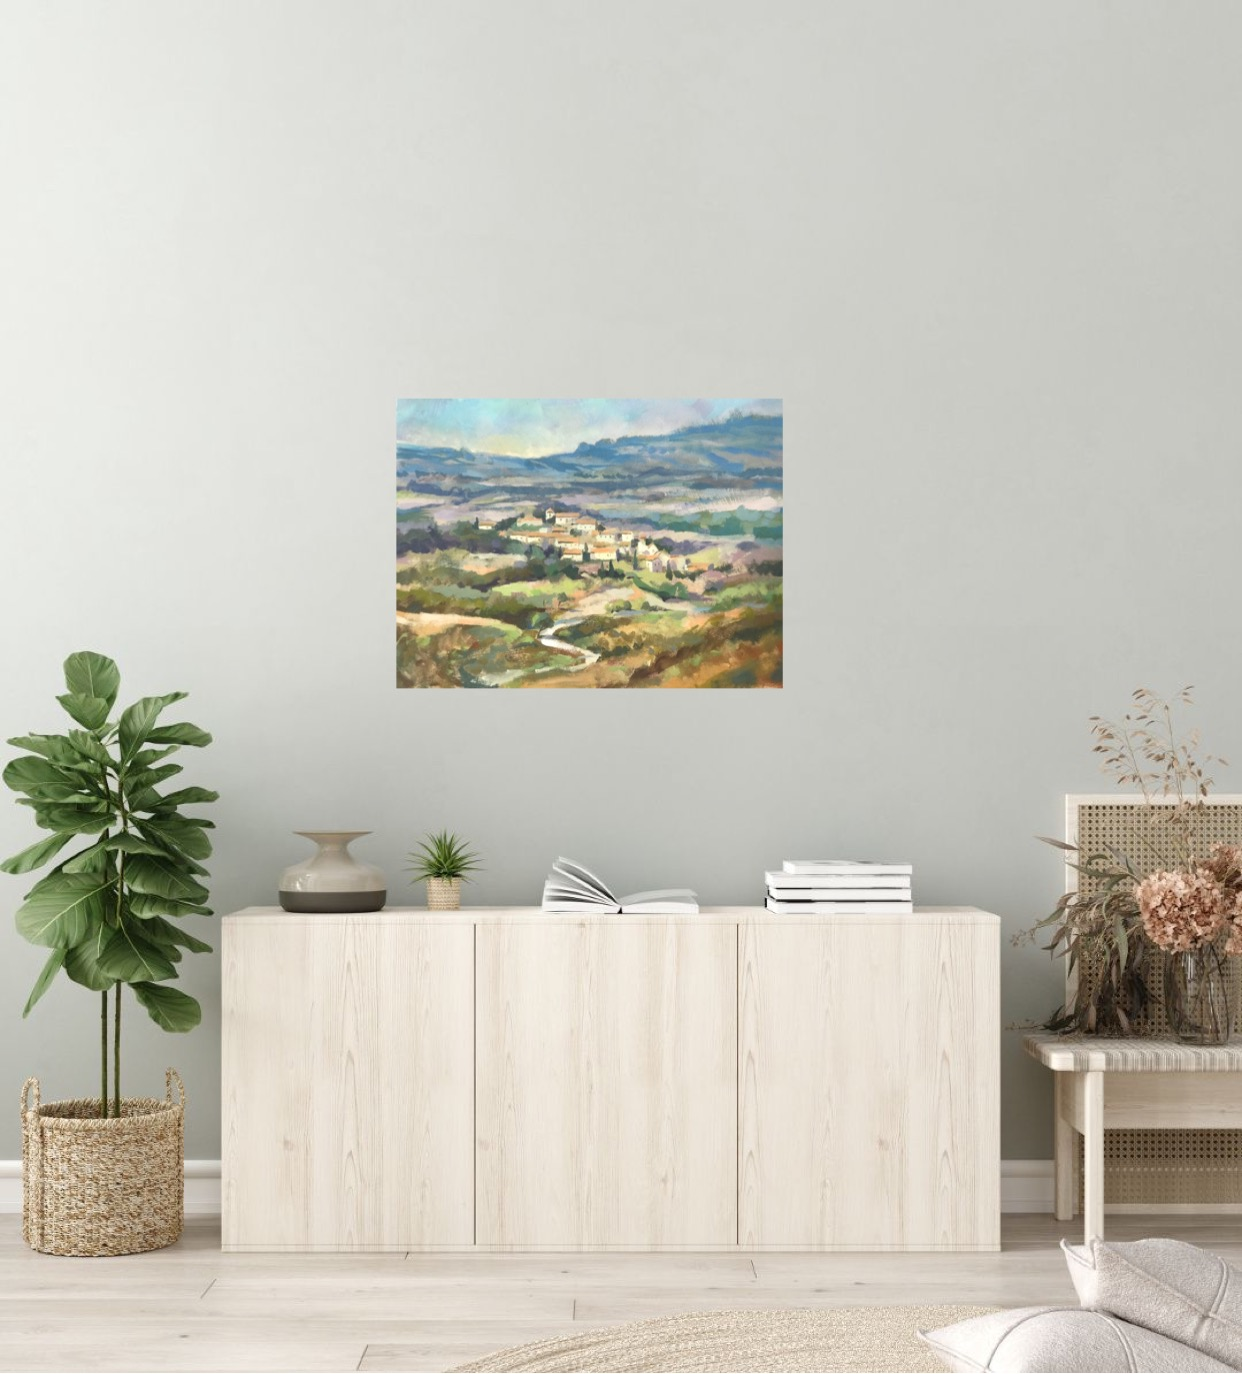 Fanjeaux, South of France is an original Trevor Waugh oil painting.